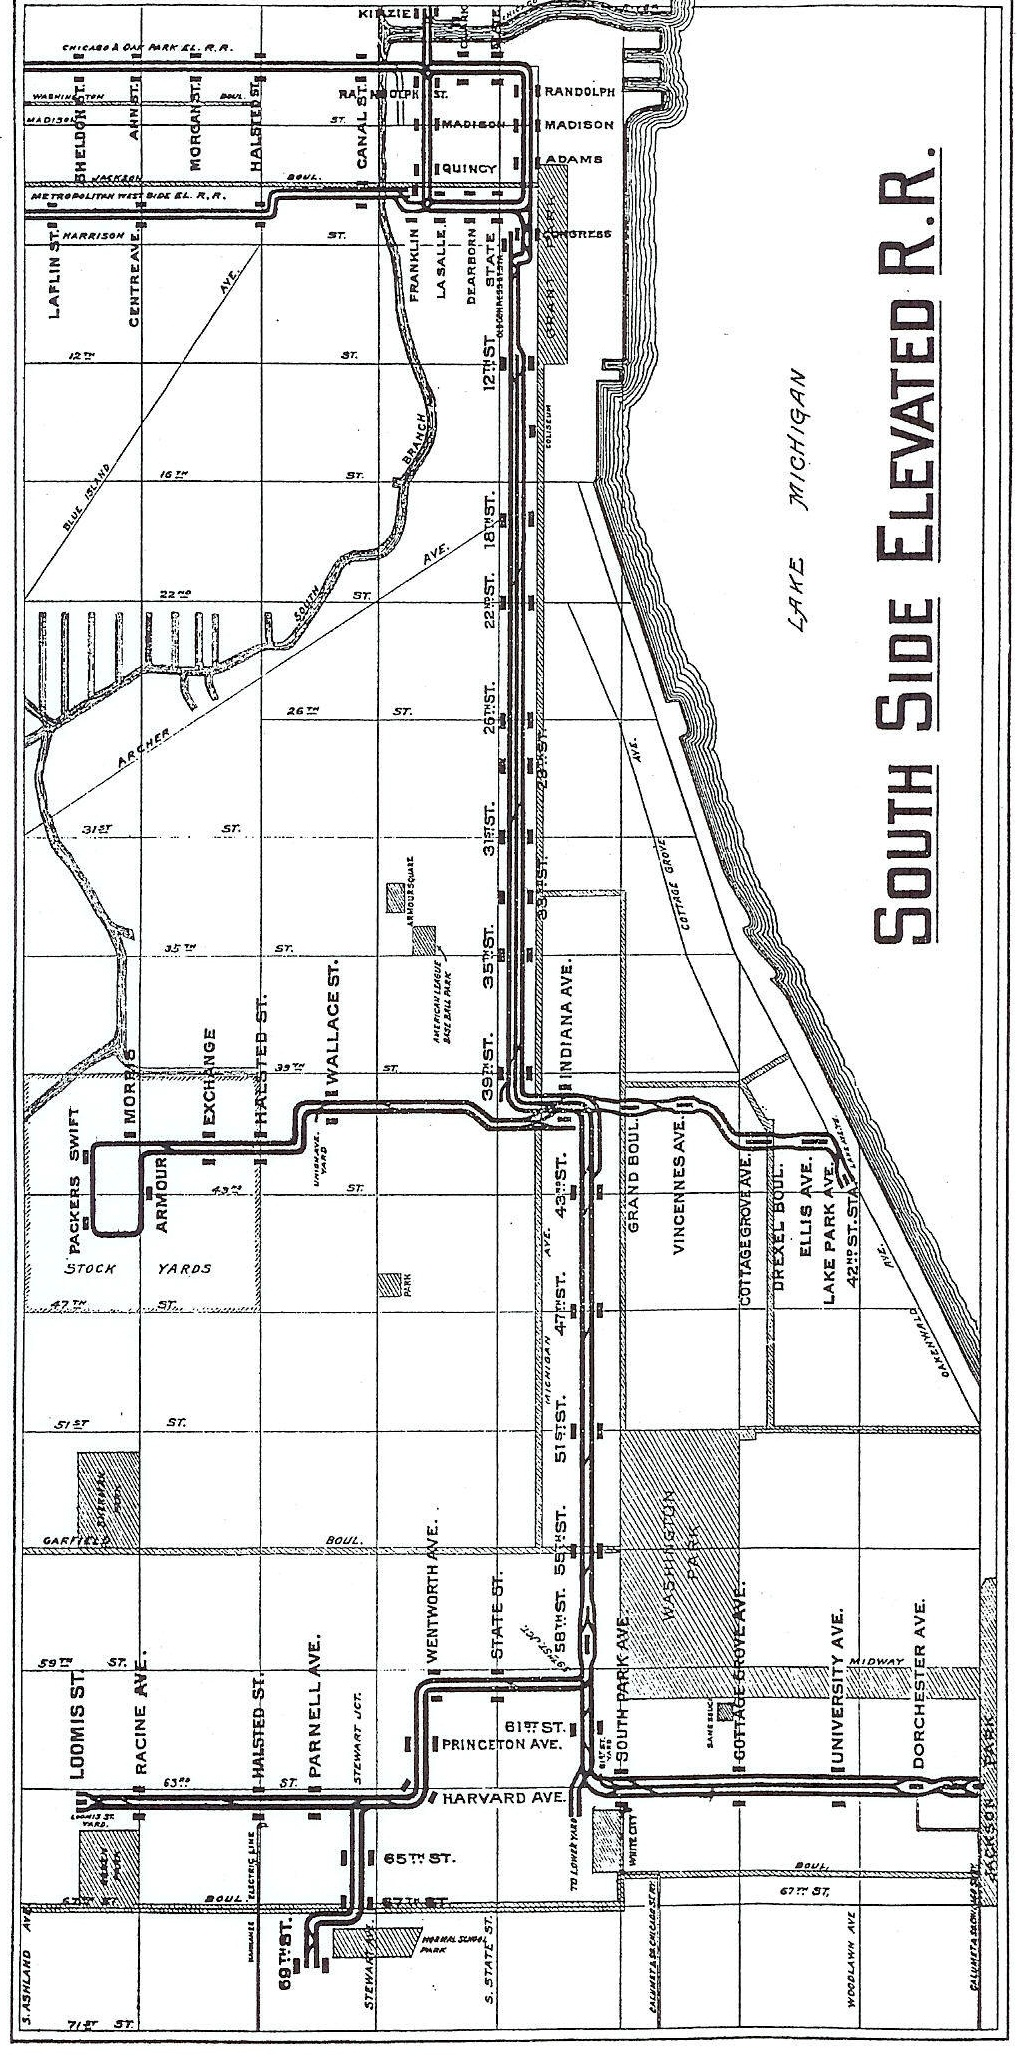 South Side Elevated Railroad - 1913